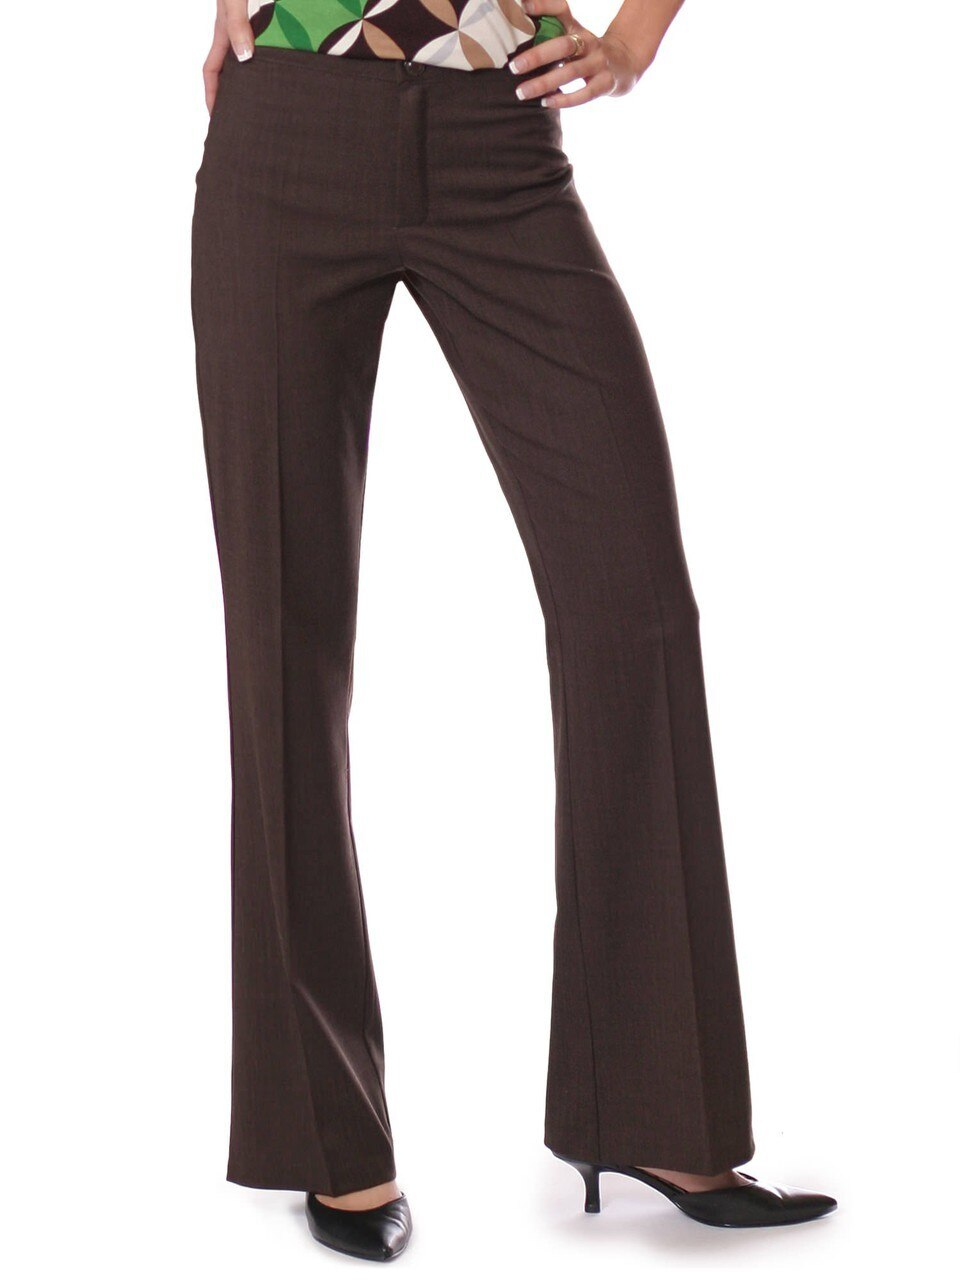 Jalie - 2909 Women's Trousers